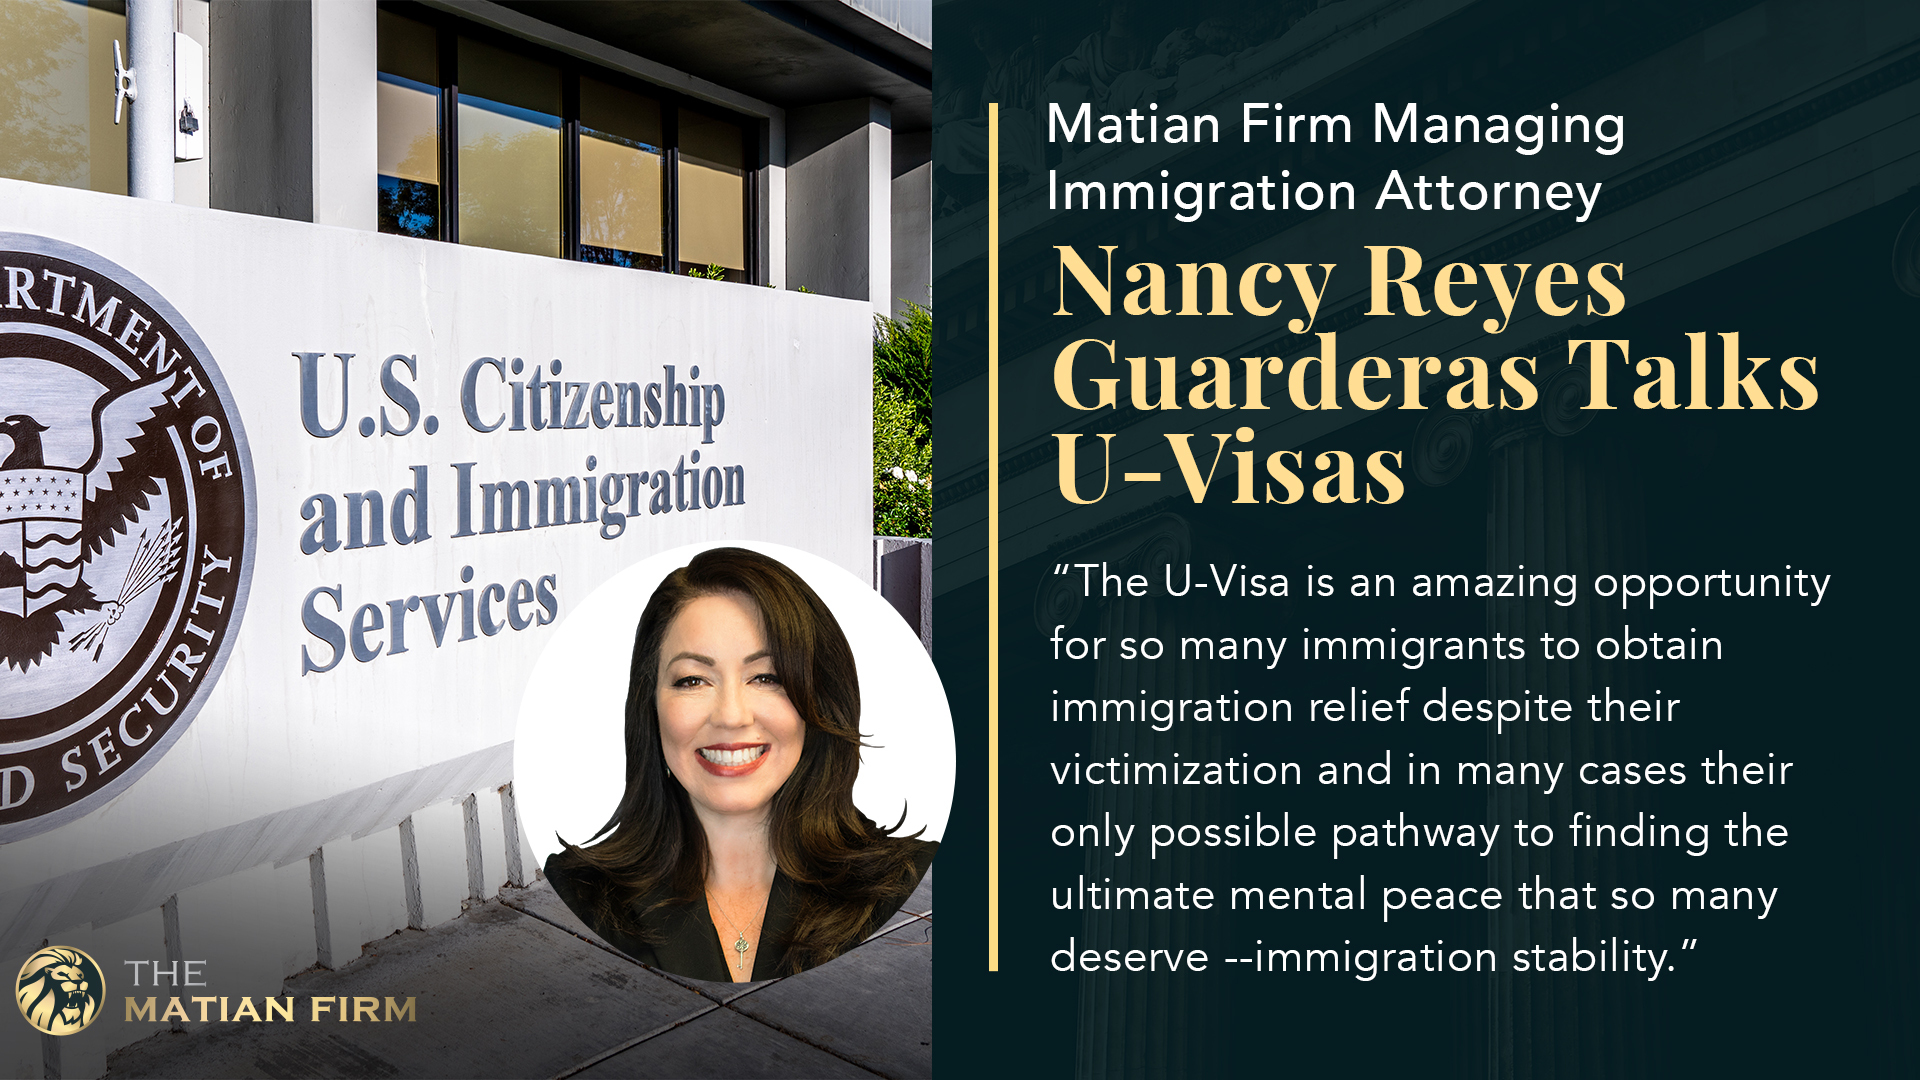 Matian Firm Managing Immigration Attorney Nancy Reyes Guarderas Talks U-Visas